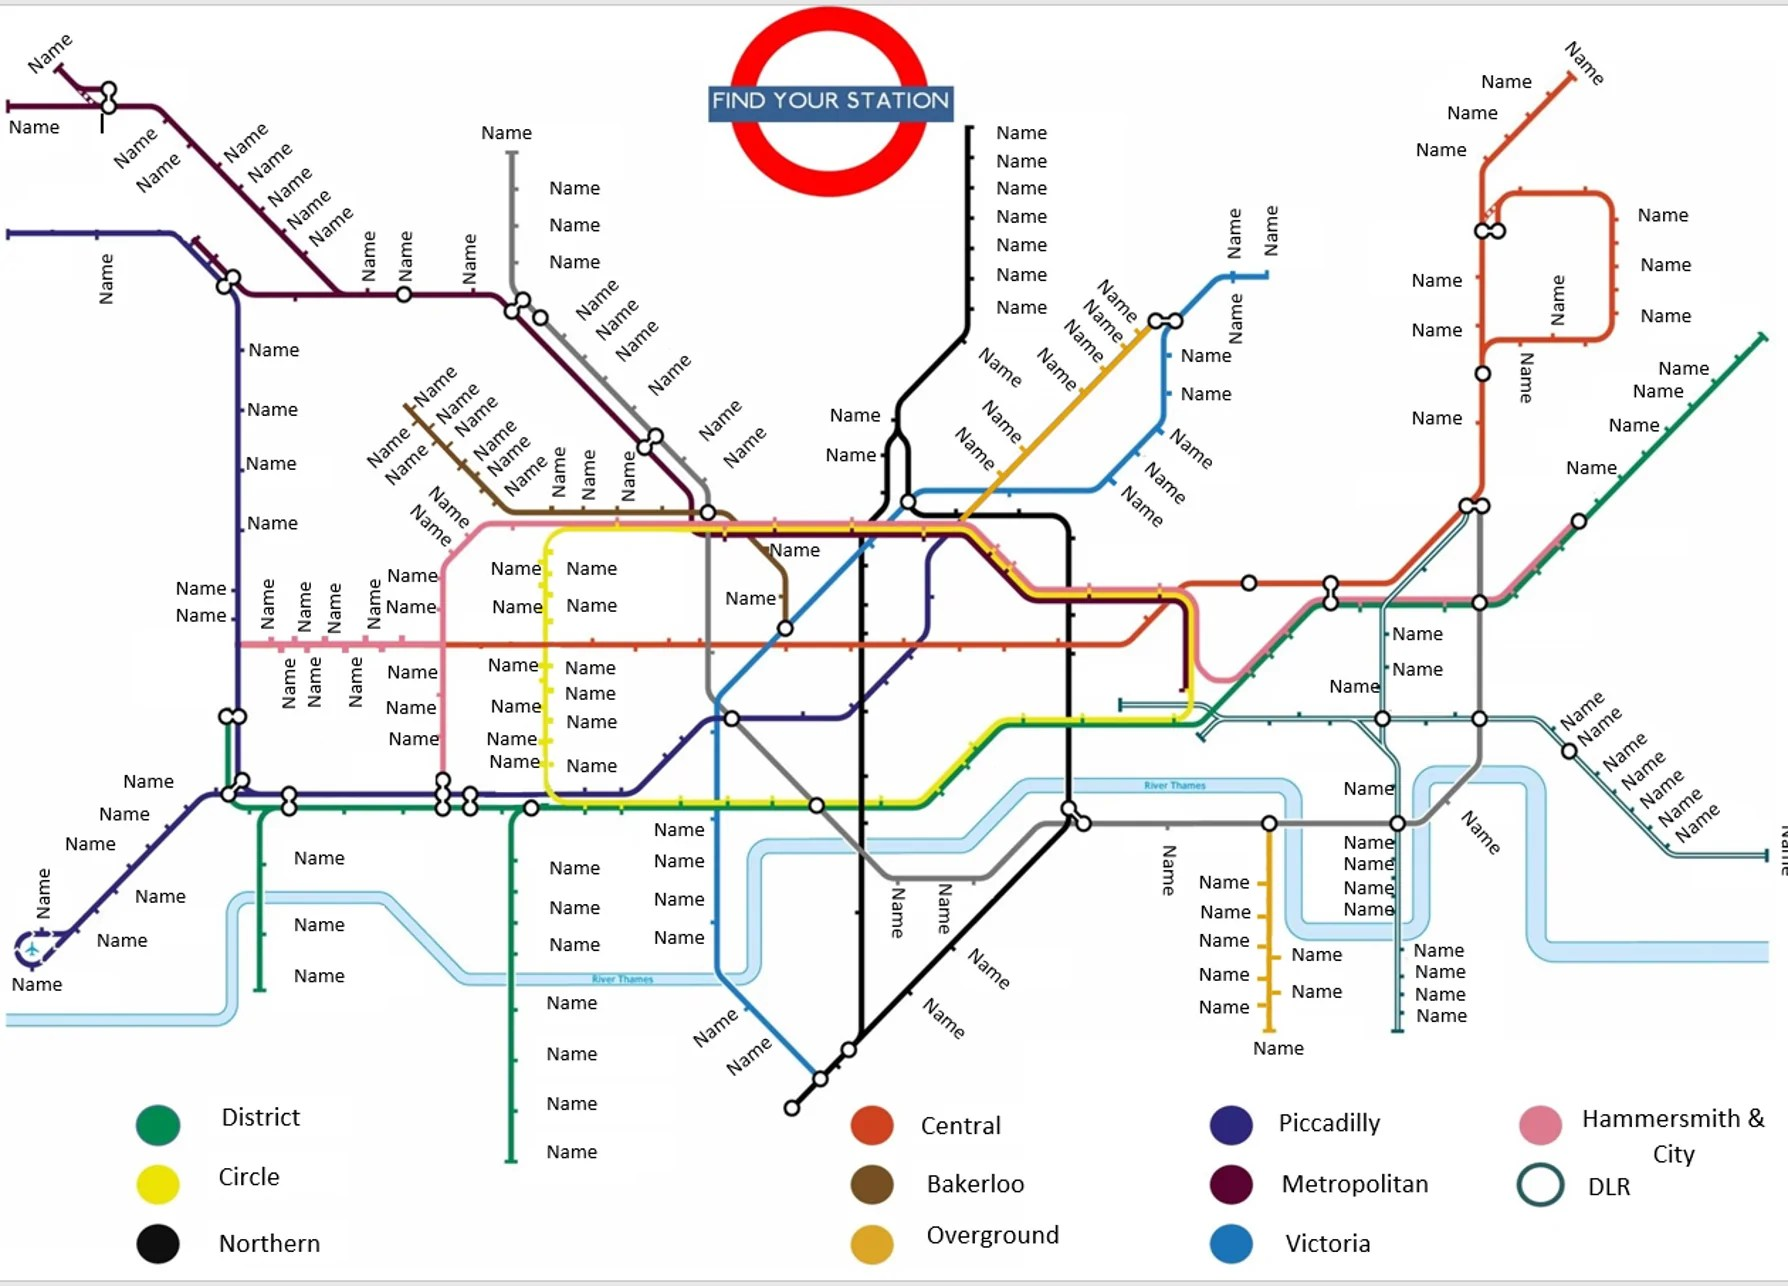 medium resolution of london tube map table seating plan with stations for weddings birthdays parties the party postman